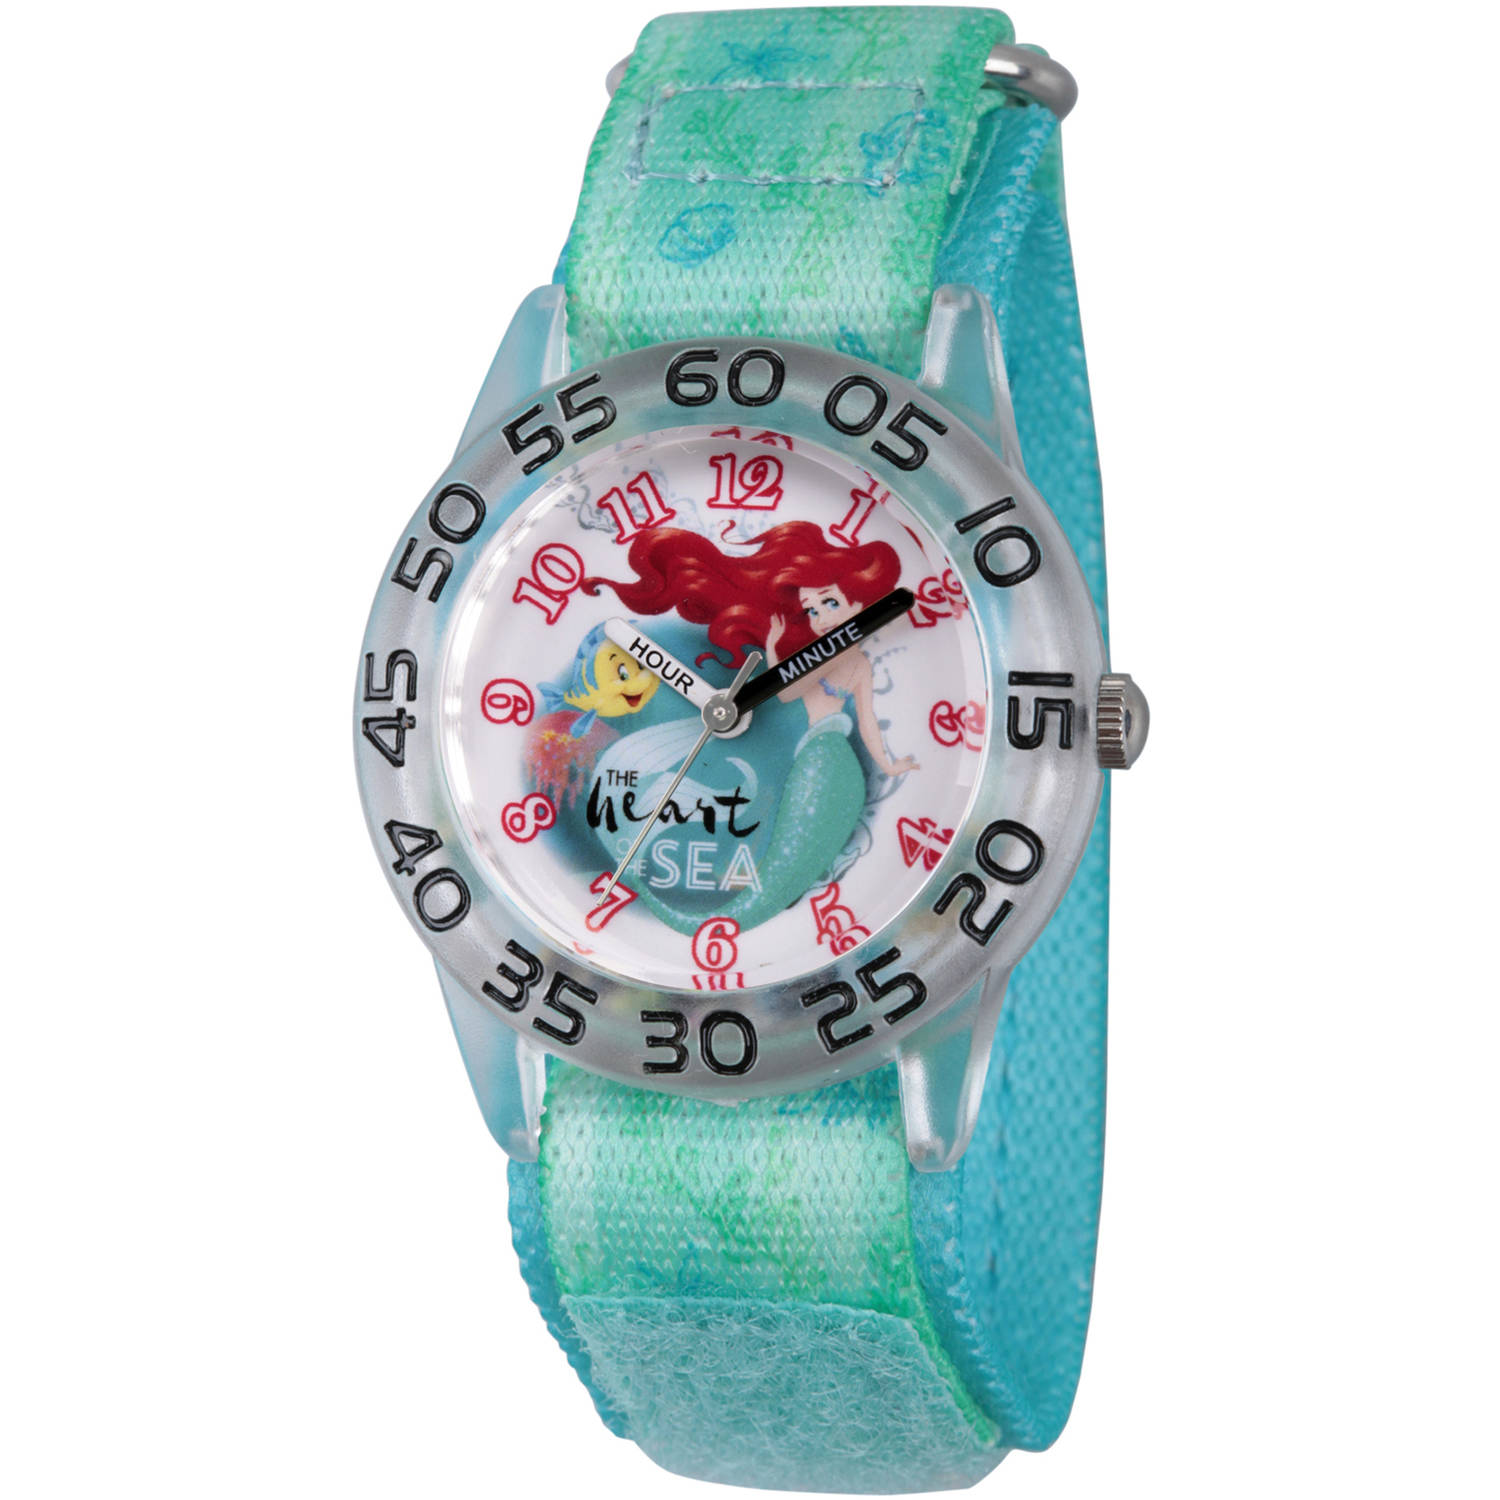 Princess Ariel and Flounder Girls' Clear Plastic Time Teacher Watch, Green Hook and Loop Stretch Nylon Strap with Printed Ariel